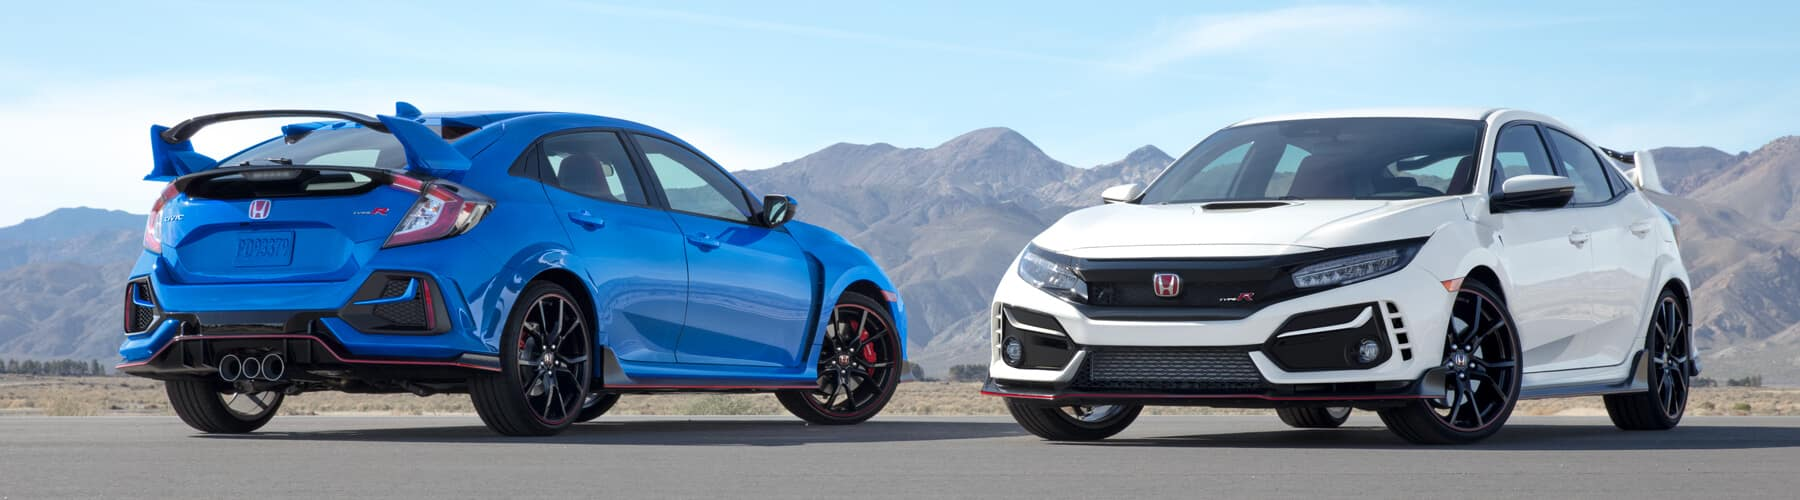 2020 Honda Civic Type R Slider